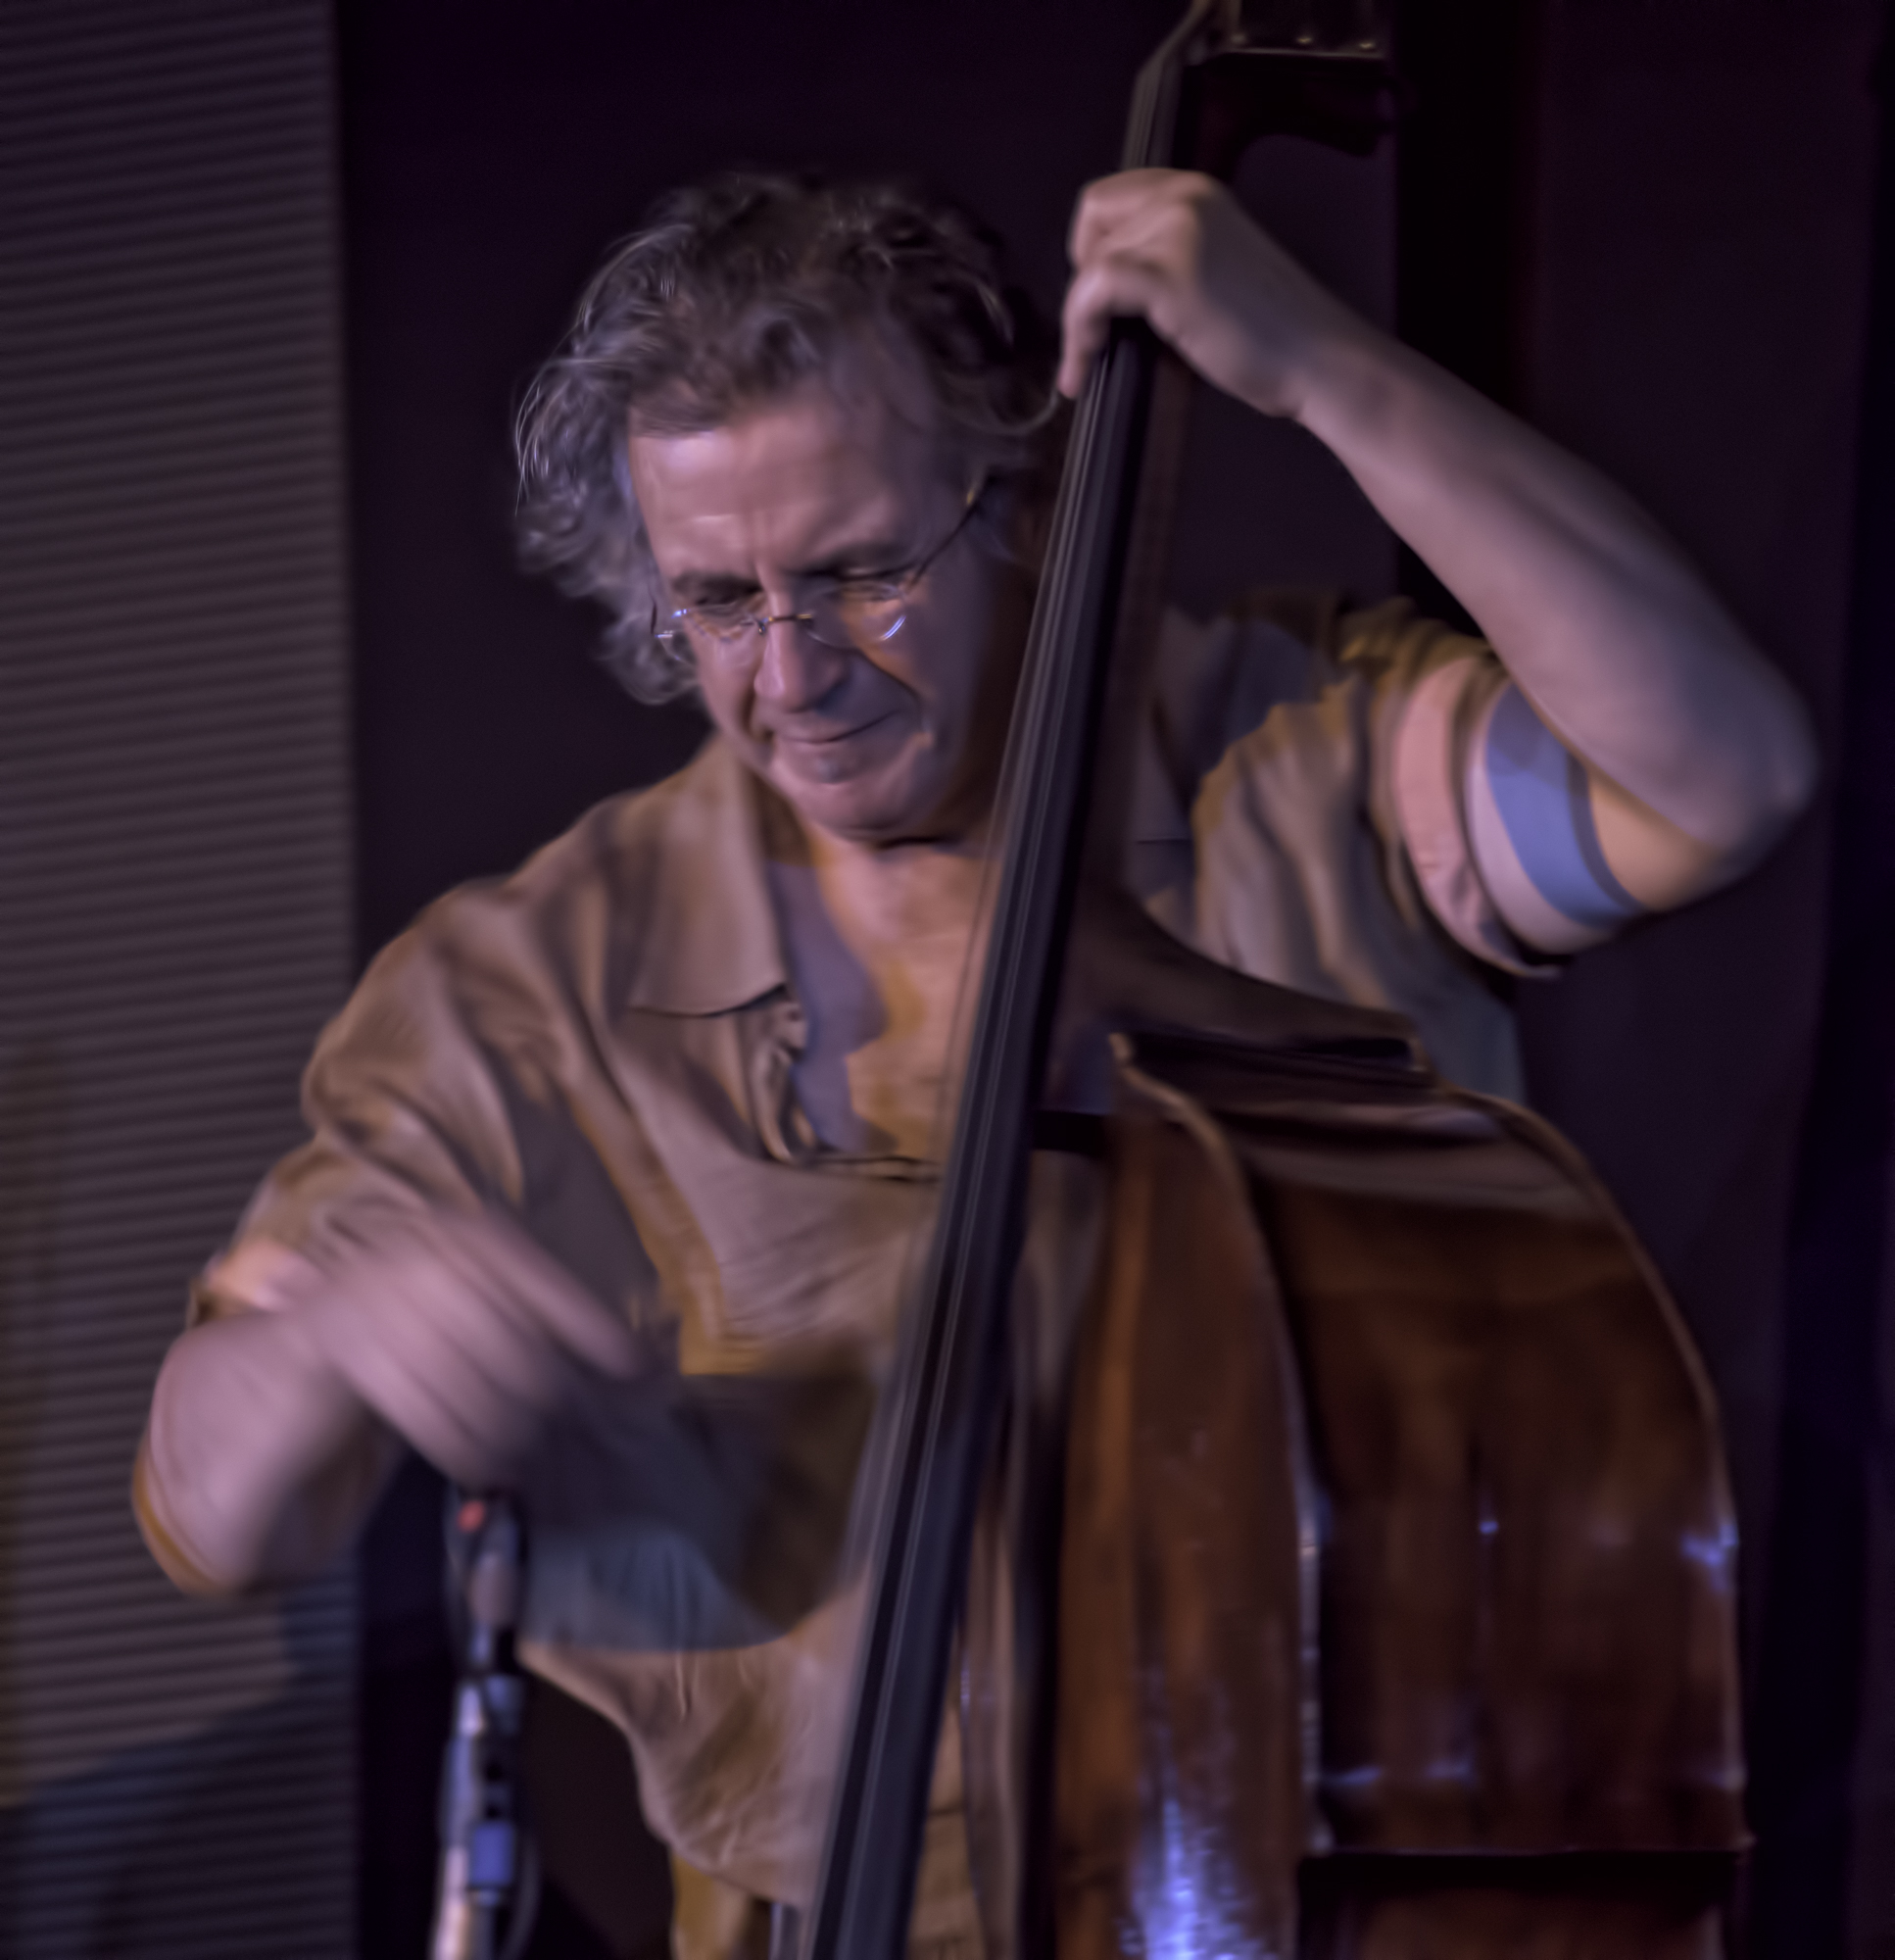 Michael Bisio with the Whit Dickey Ensemble Cosmic Breath at the 20th Anniversary Vision Festival 2015